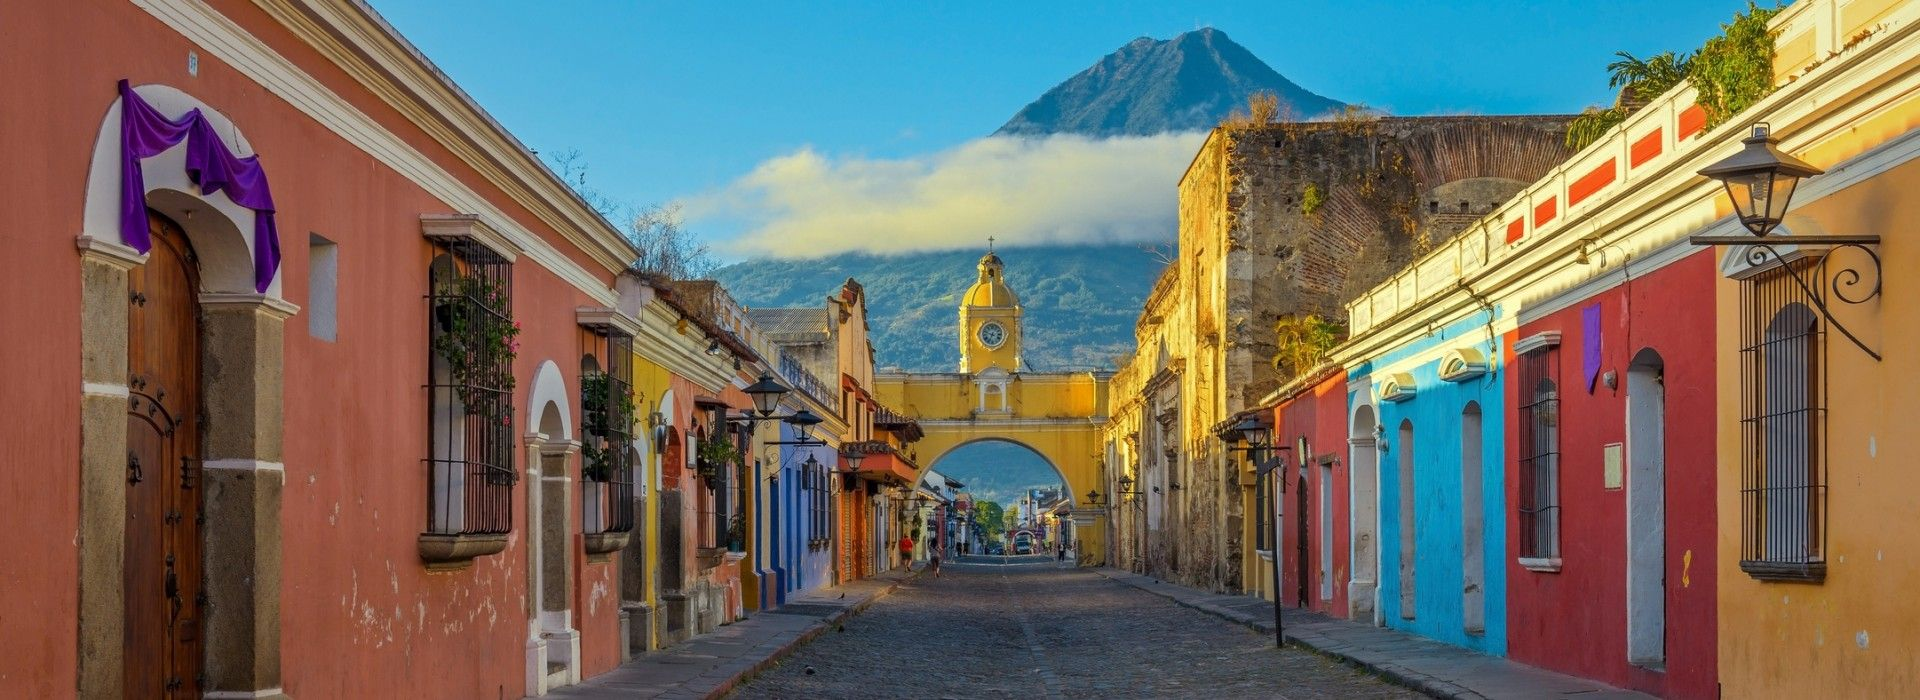 Cultural, religious and historic sites Tours in Central America